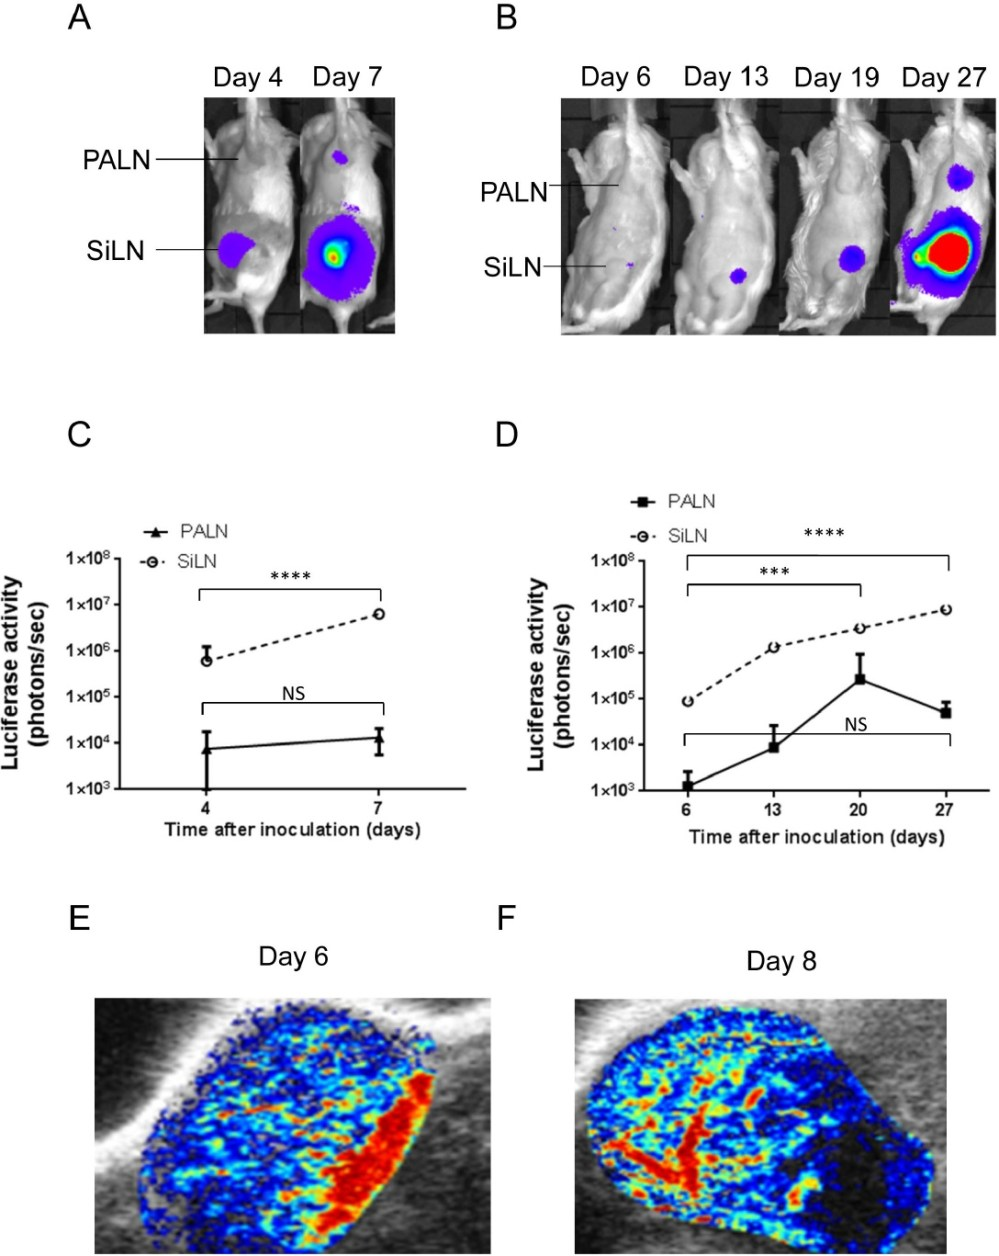 medium resolution of induction of metastasis of km luc gfp cells or fm3a luc cells to the proper axillary lymph node paln after inoculation of the cells into the subiliac